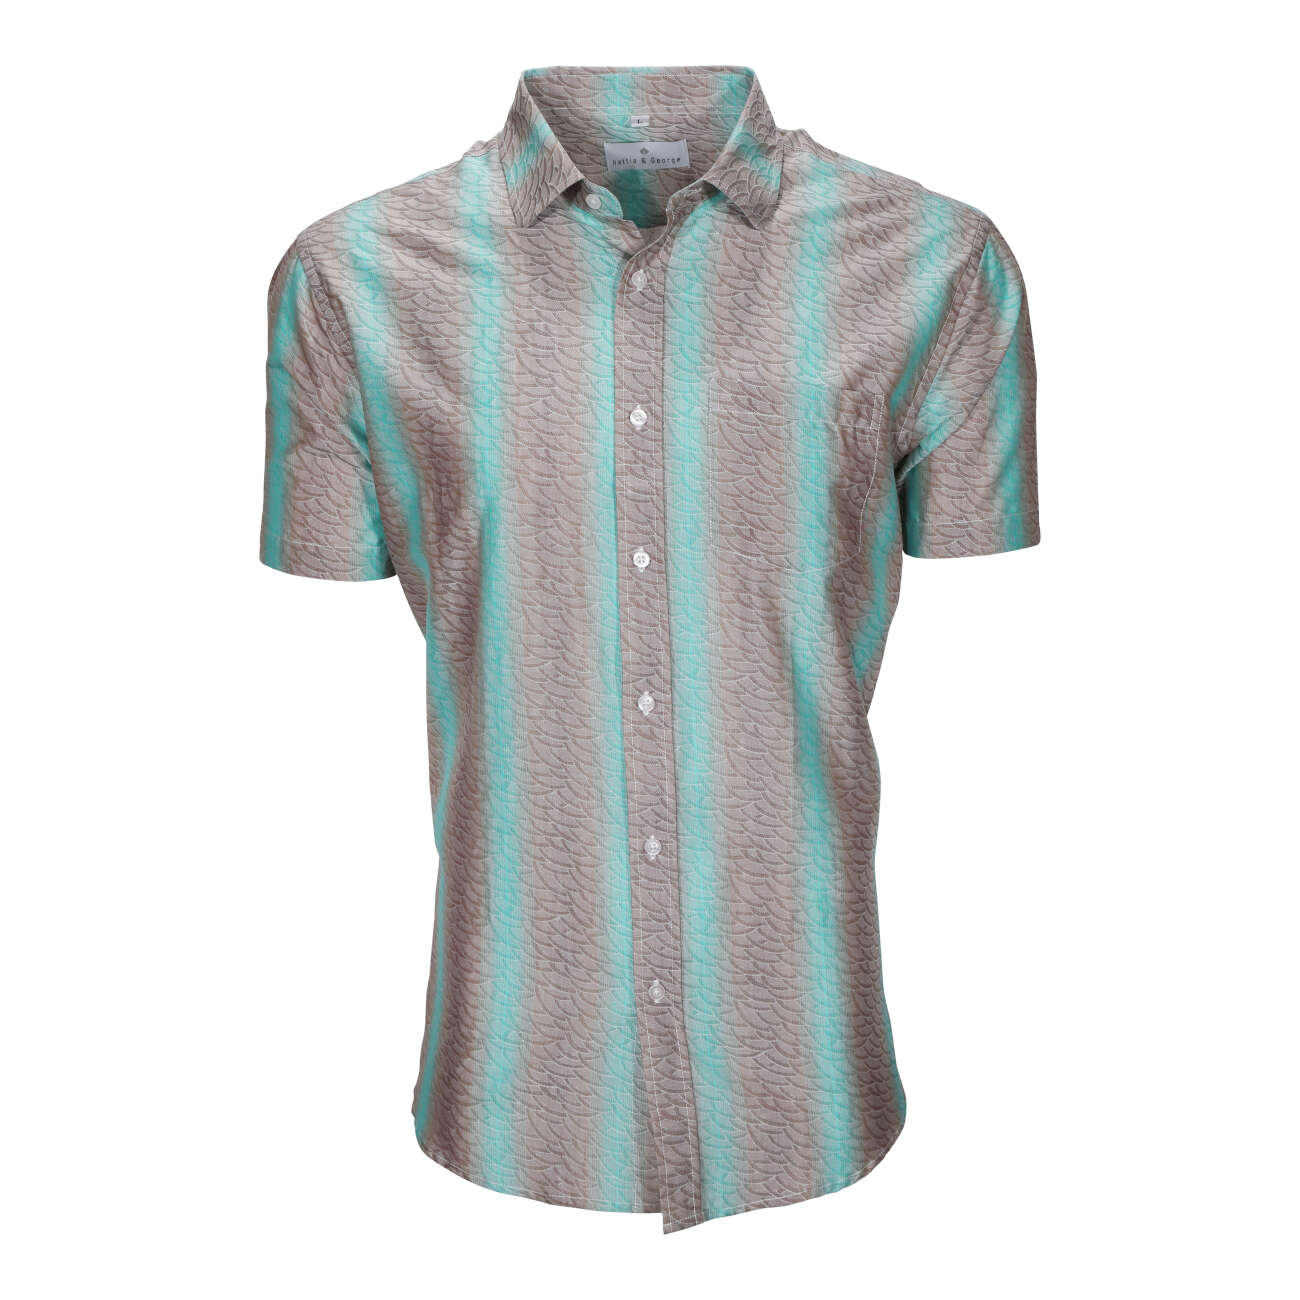 Mint men's short sleeve dress shirt.